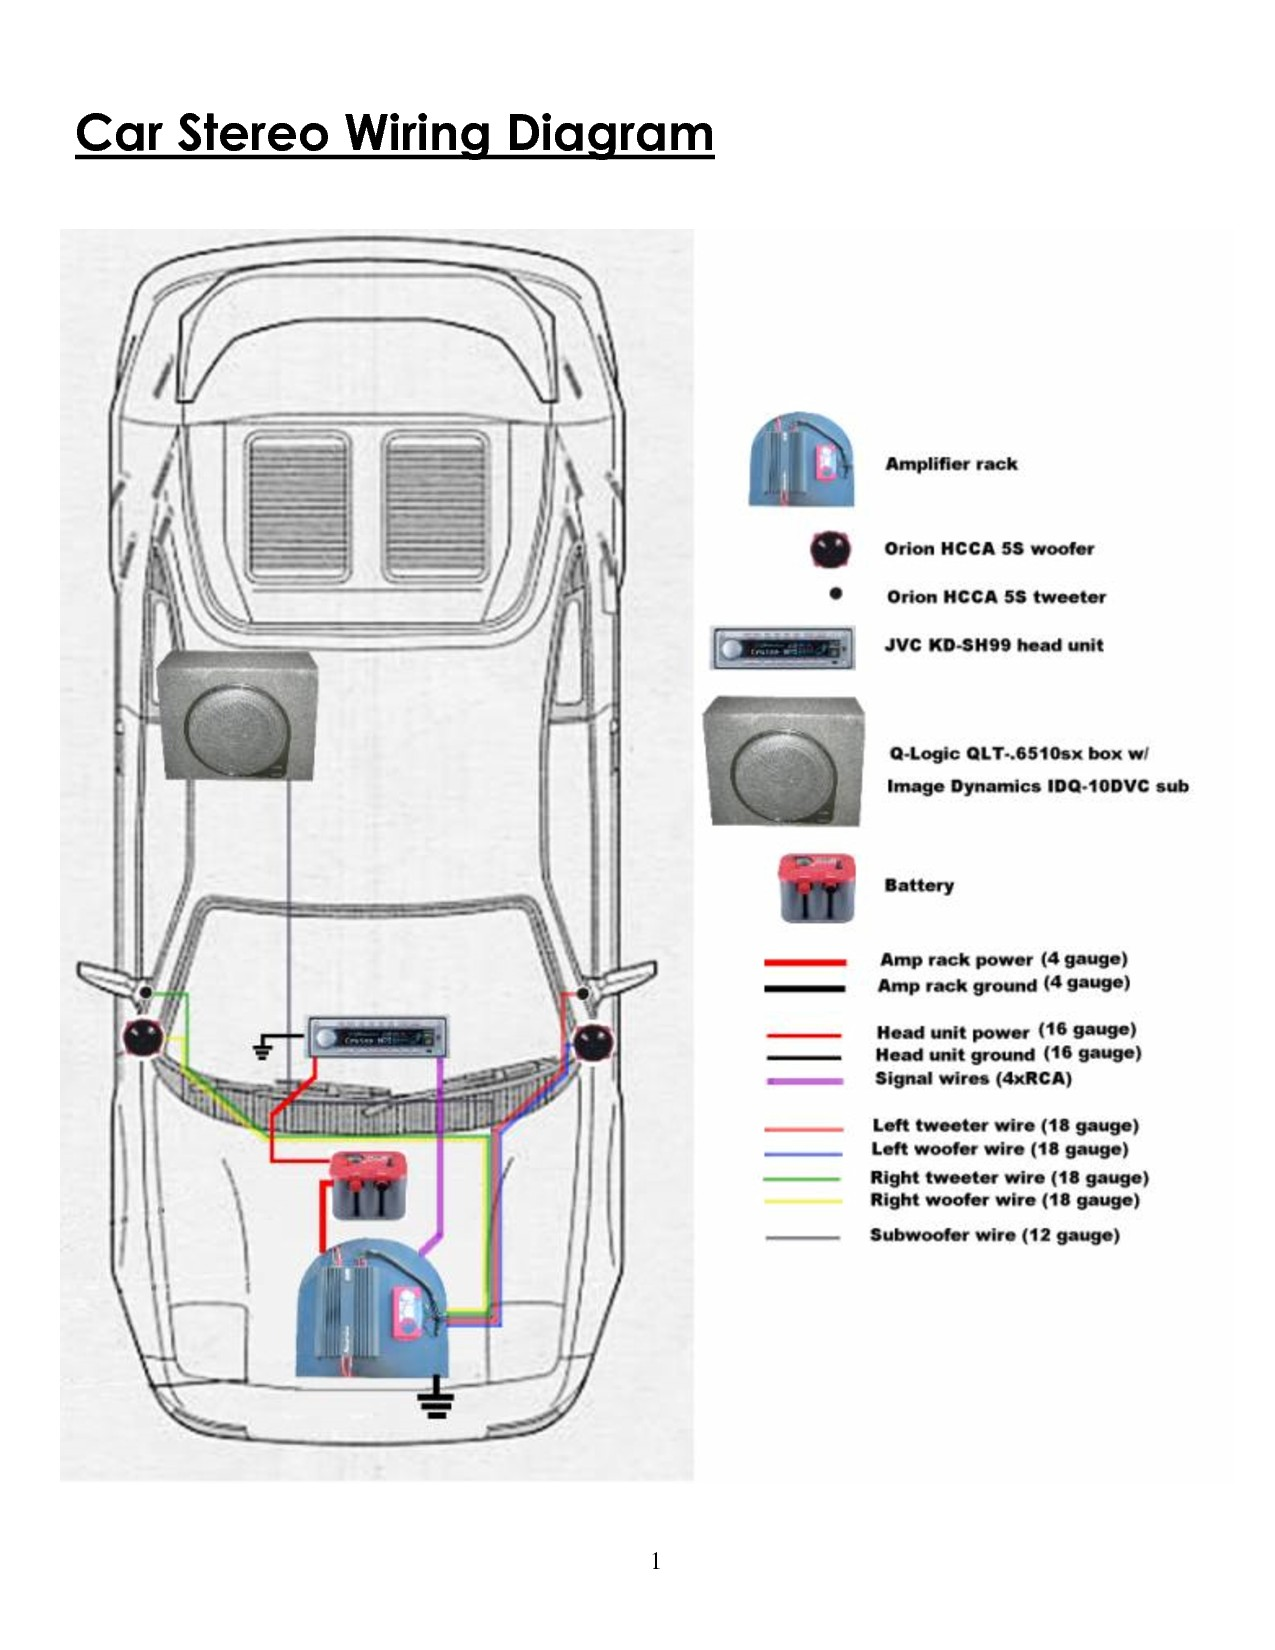 Wiring diagram for car amplifier and subwoofer car audio wiring car audio wiring diagram pioneer radio colors nissan stereo harness asfbconference2016 Gallery